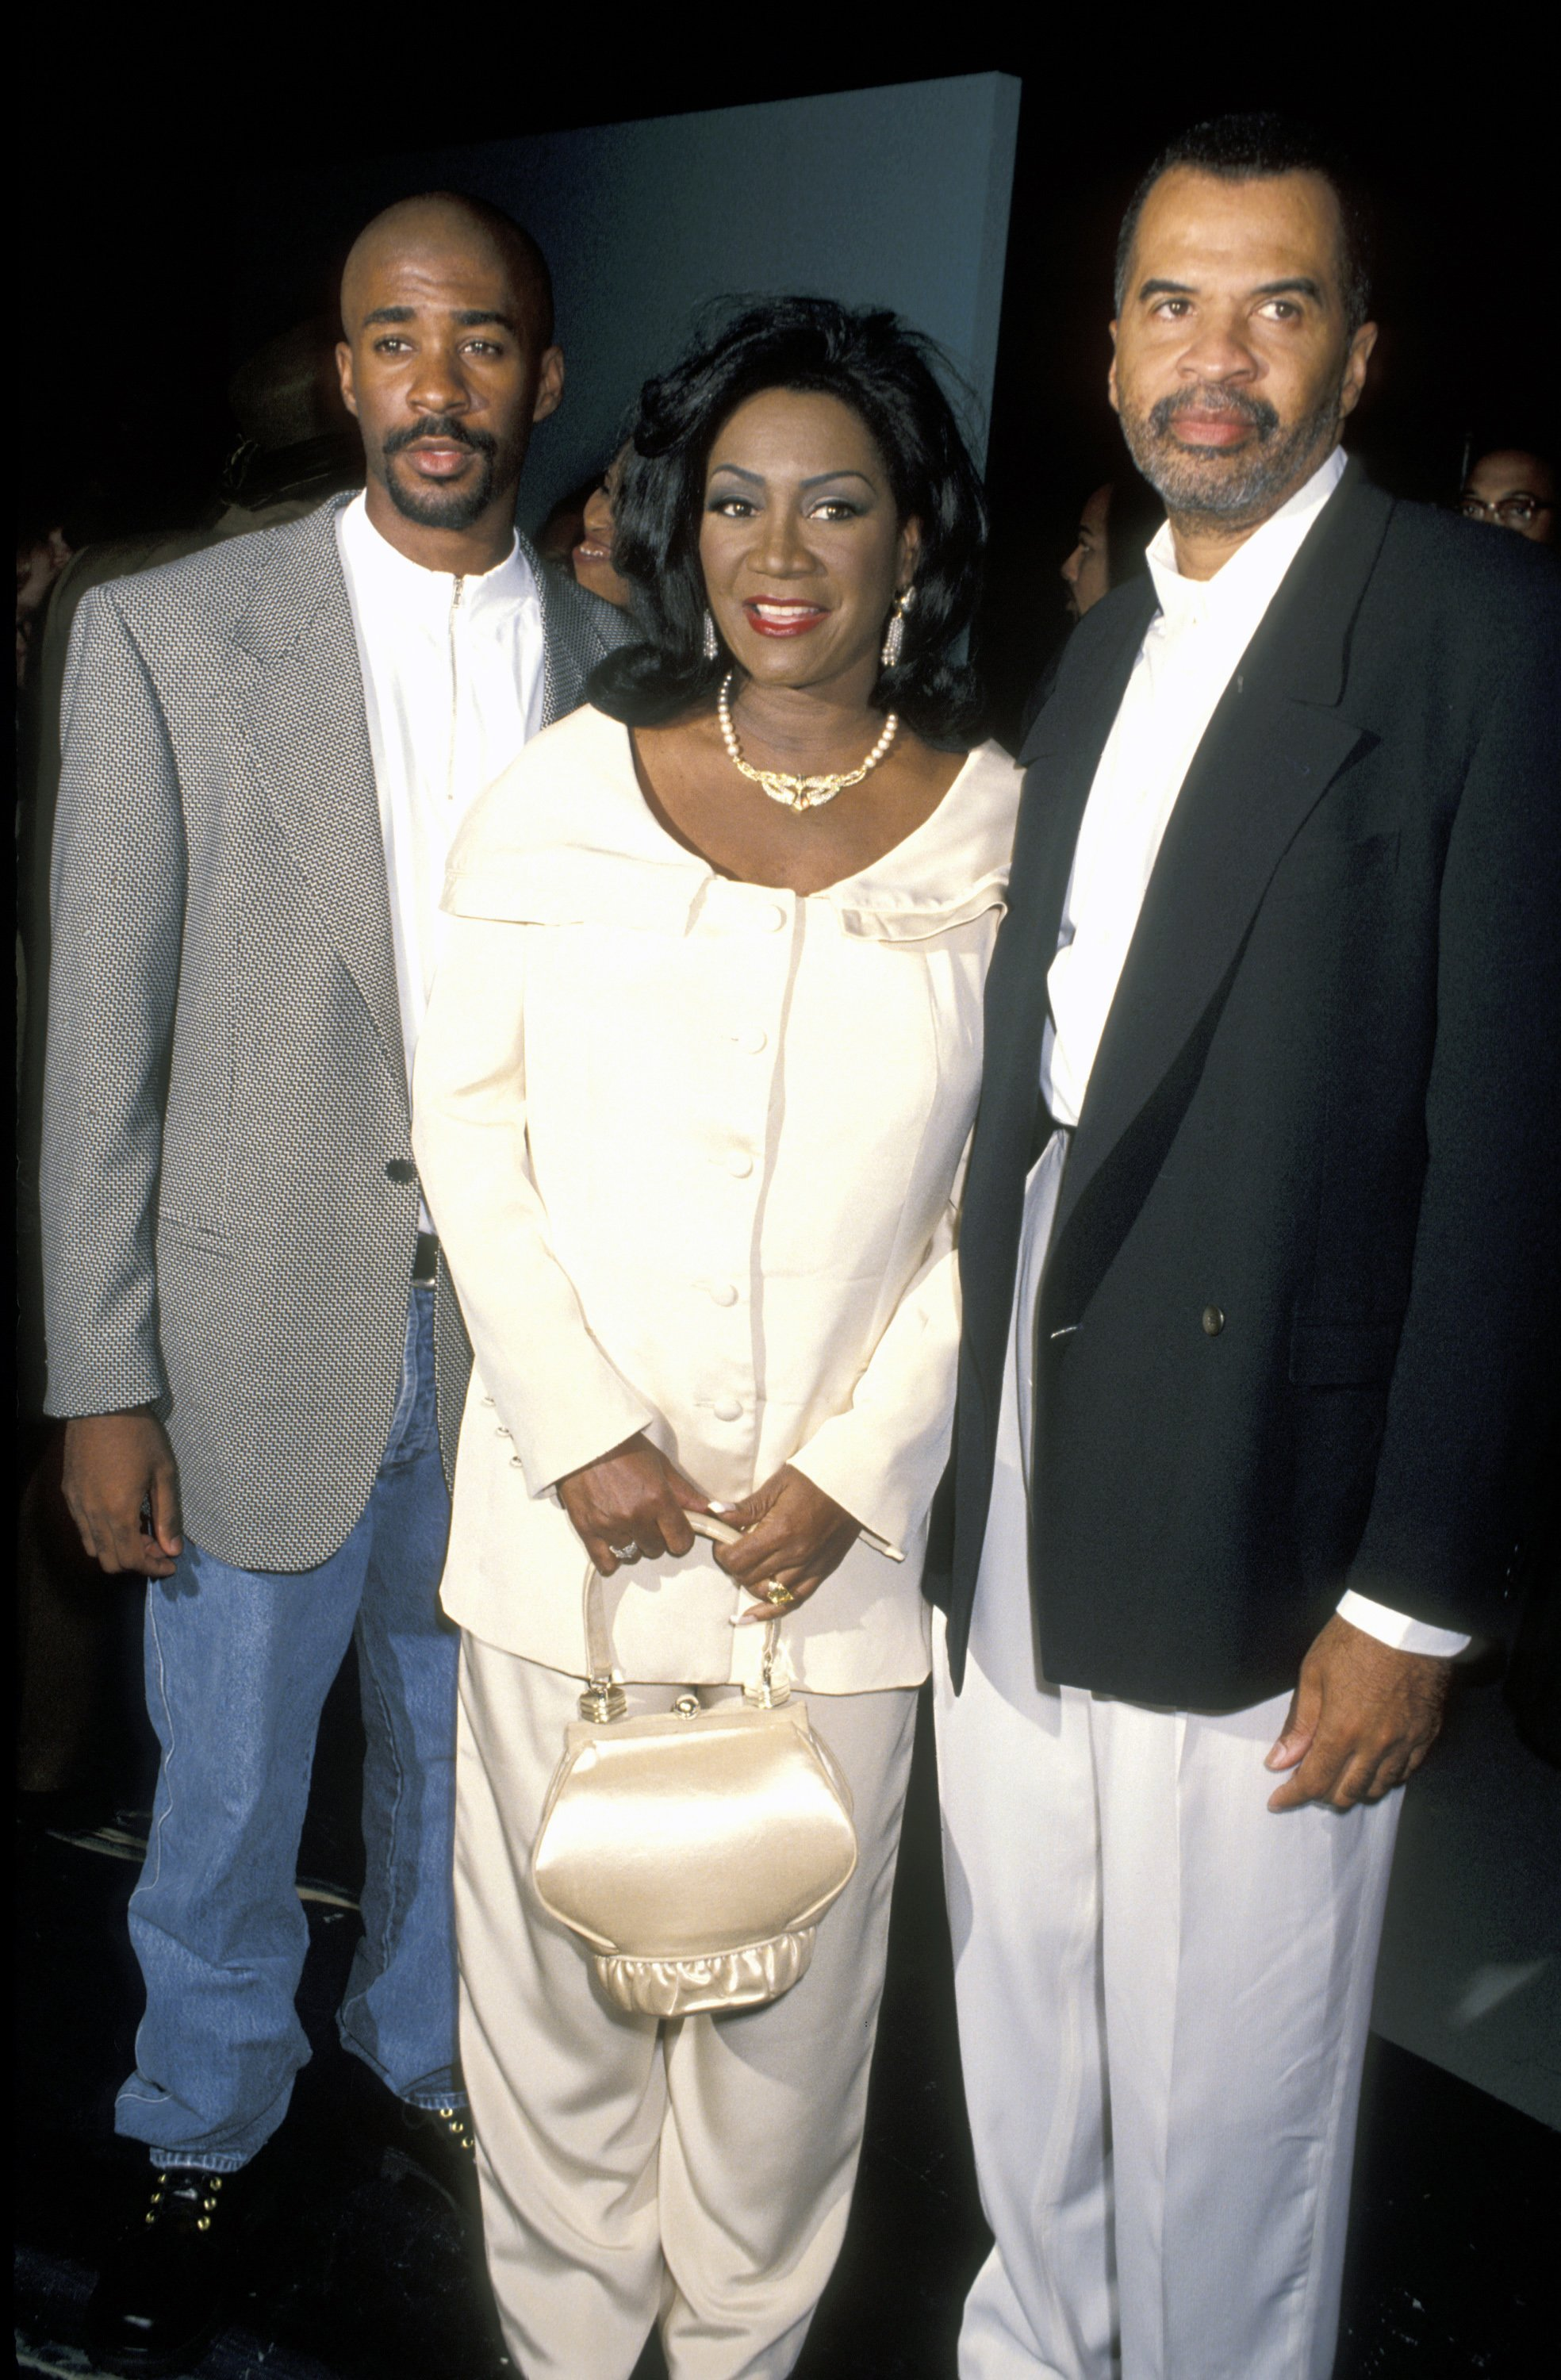 """Patti LaBelle, Son Zuli, and Husband Armstead during """"Out All Night"""" Series Premiere Party on September 11, 1992 at Raleigh Studios in Hollywood, California    Photo: Getty Images"""